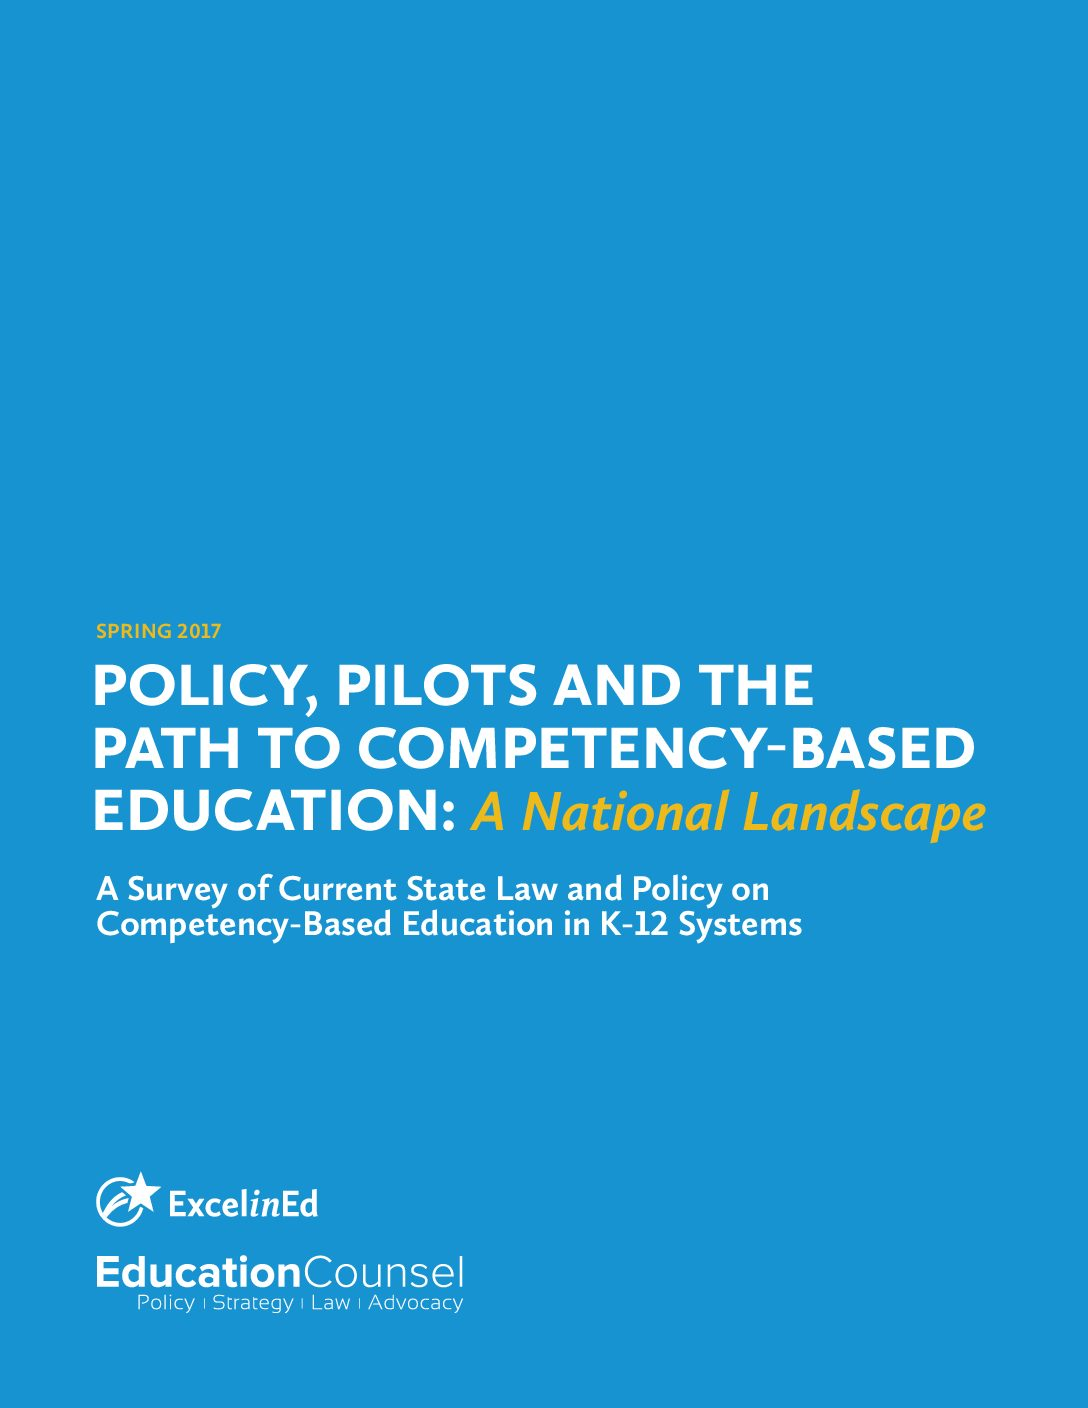 Policy Pilots and the Path to Competency-Based Education National Landscape &#8211; Spring 2017>									 									</a> 									<a href=